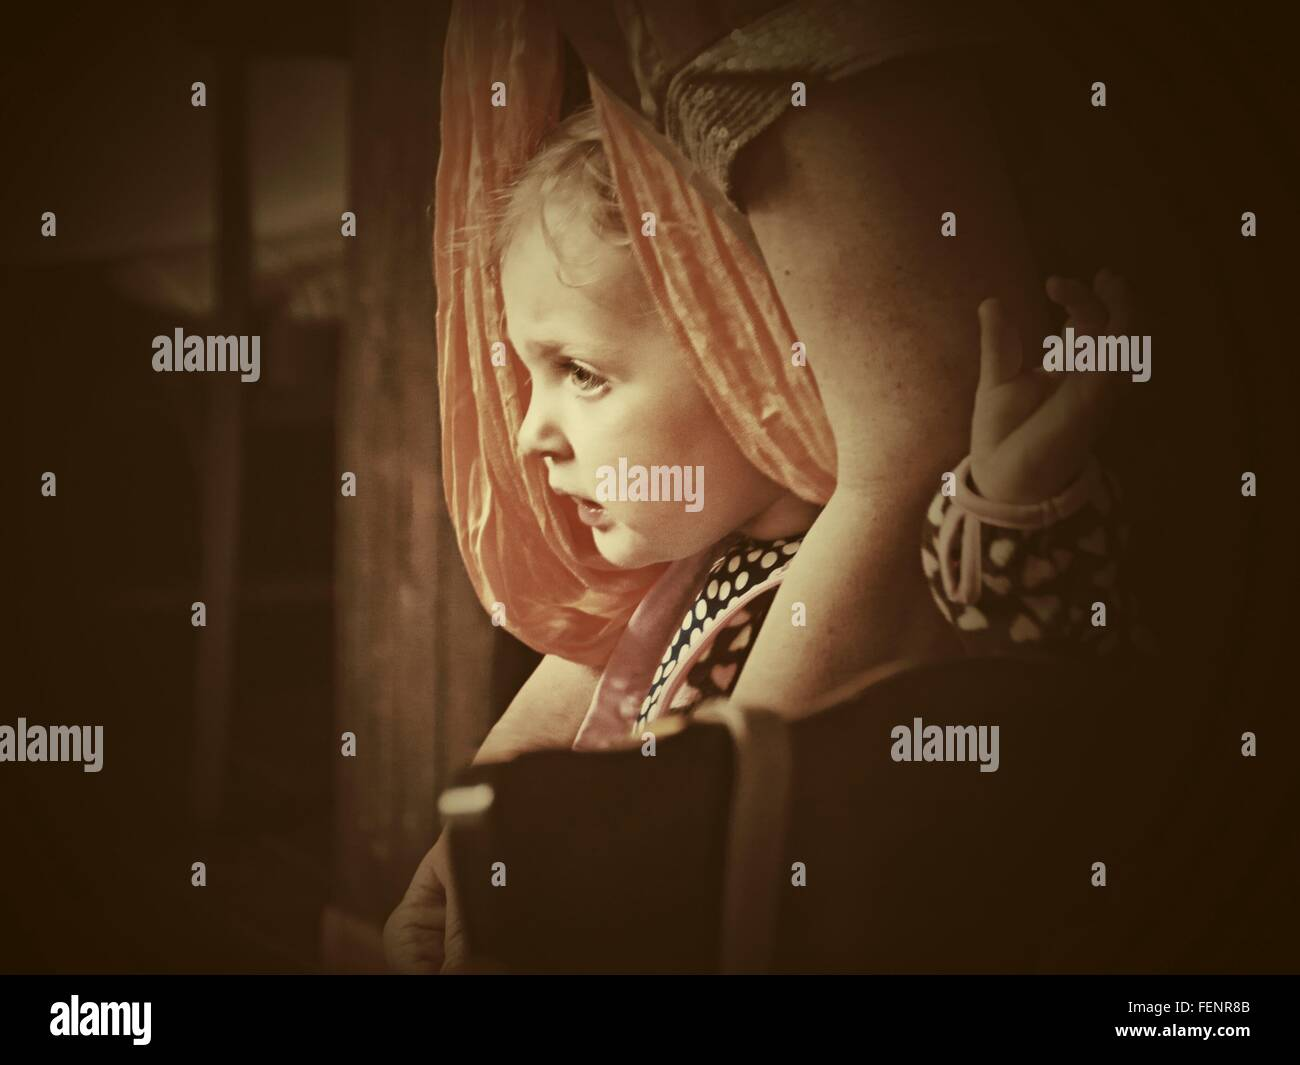 Girl With Mother Looking Out Window - Stock Image